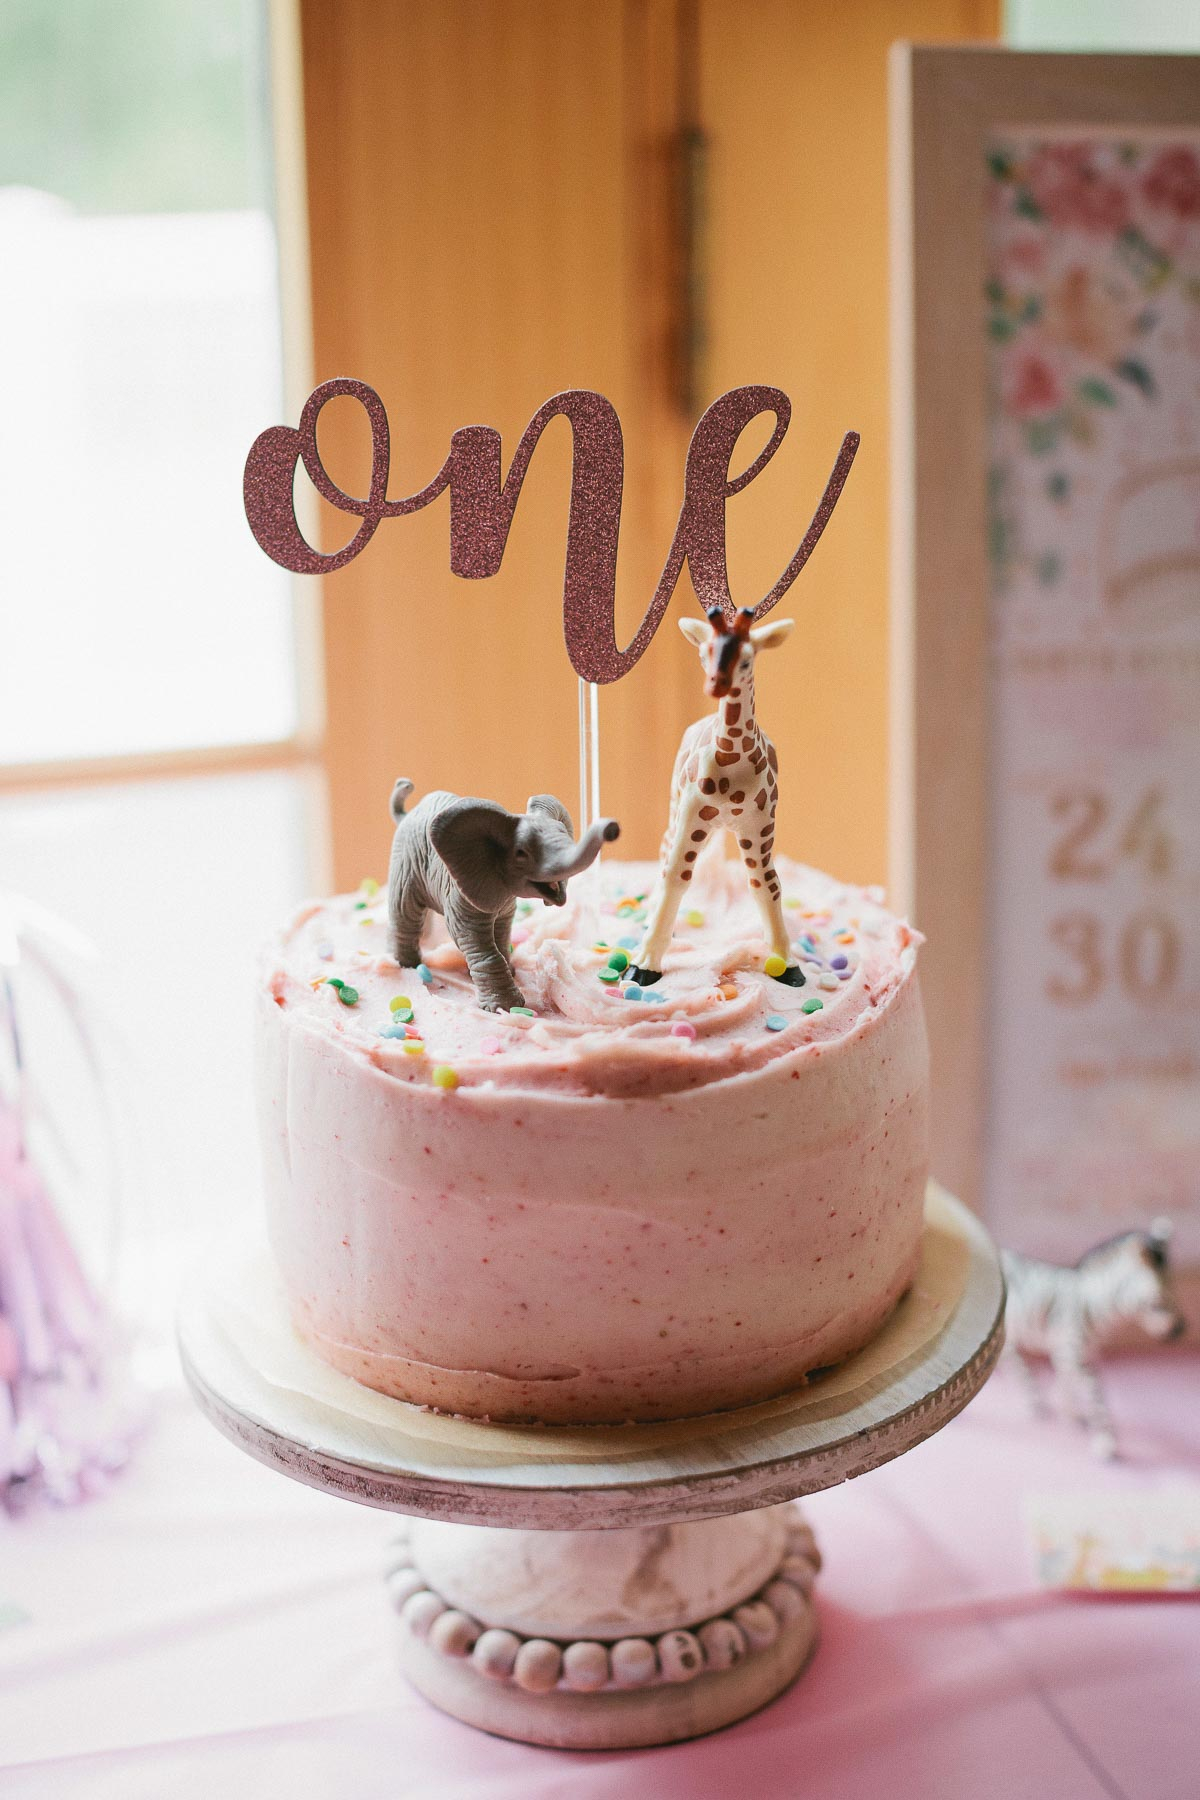 32+ Awesome Picture of Baby Birthday Cake